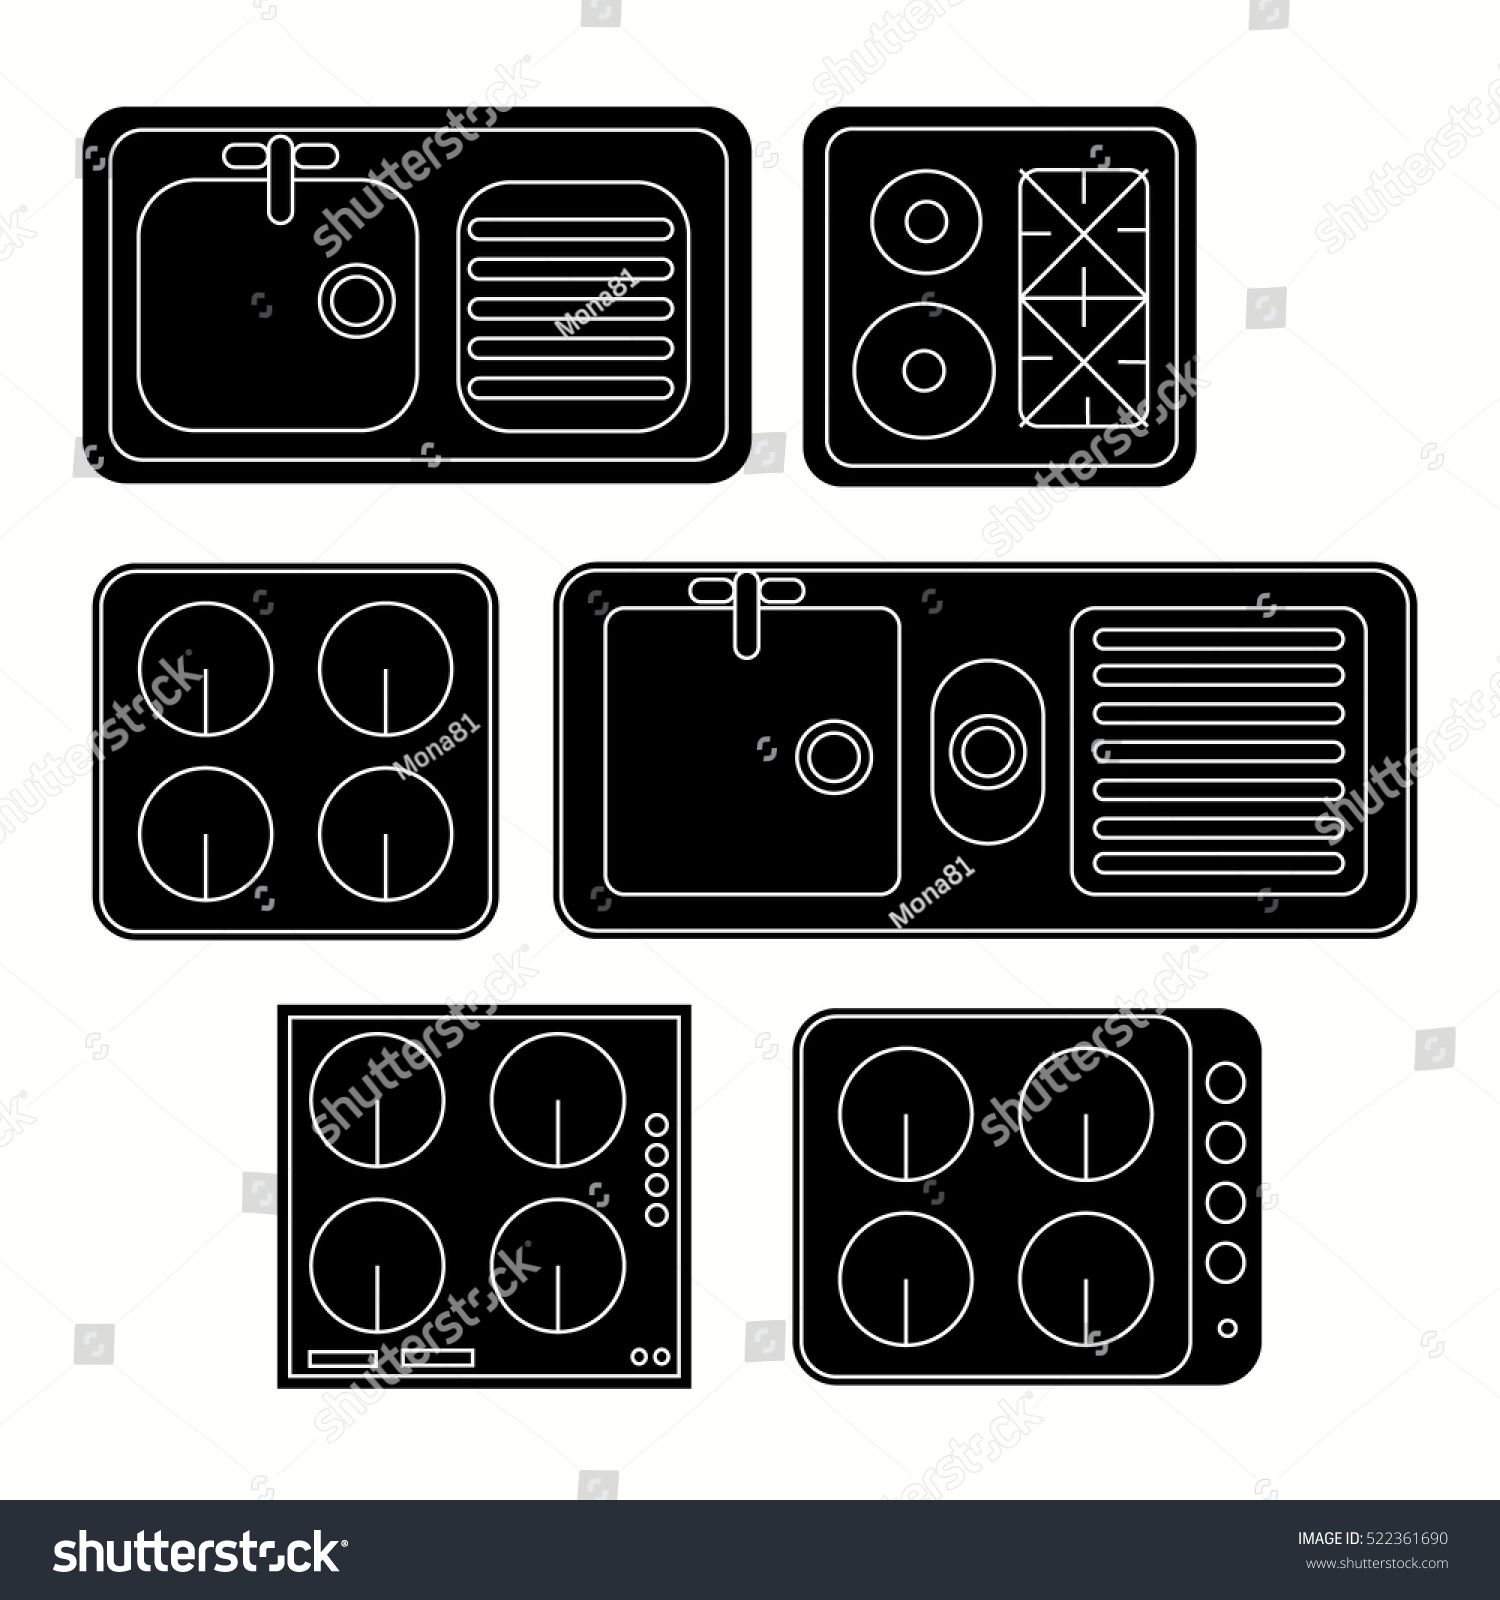 Top View Kitchen Elements Furniture Symbols Stock Vector Hd Royalty